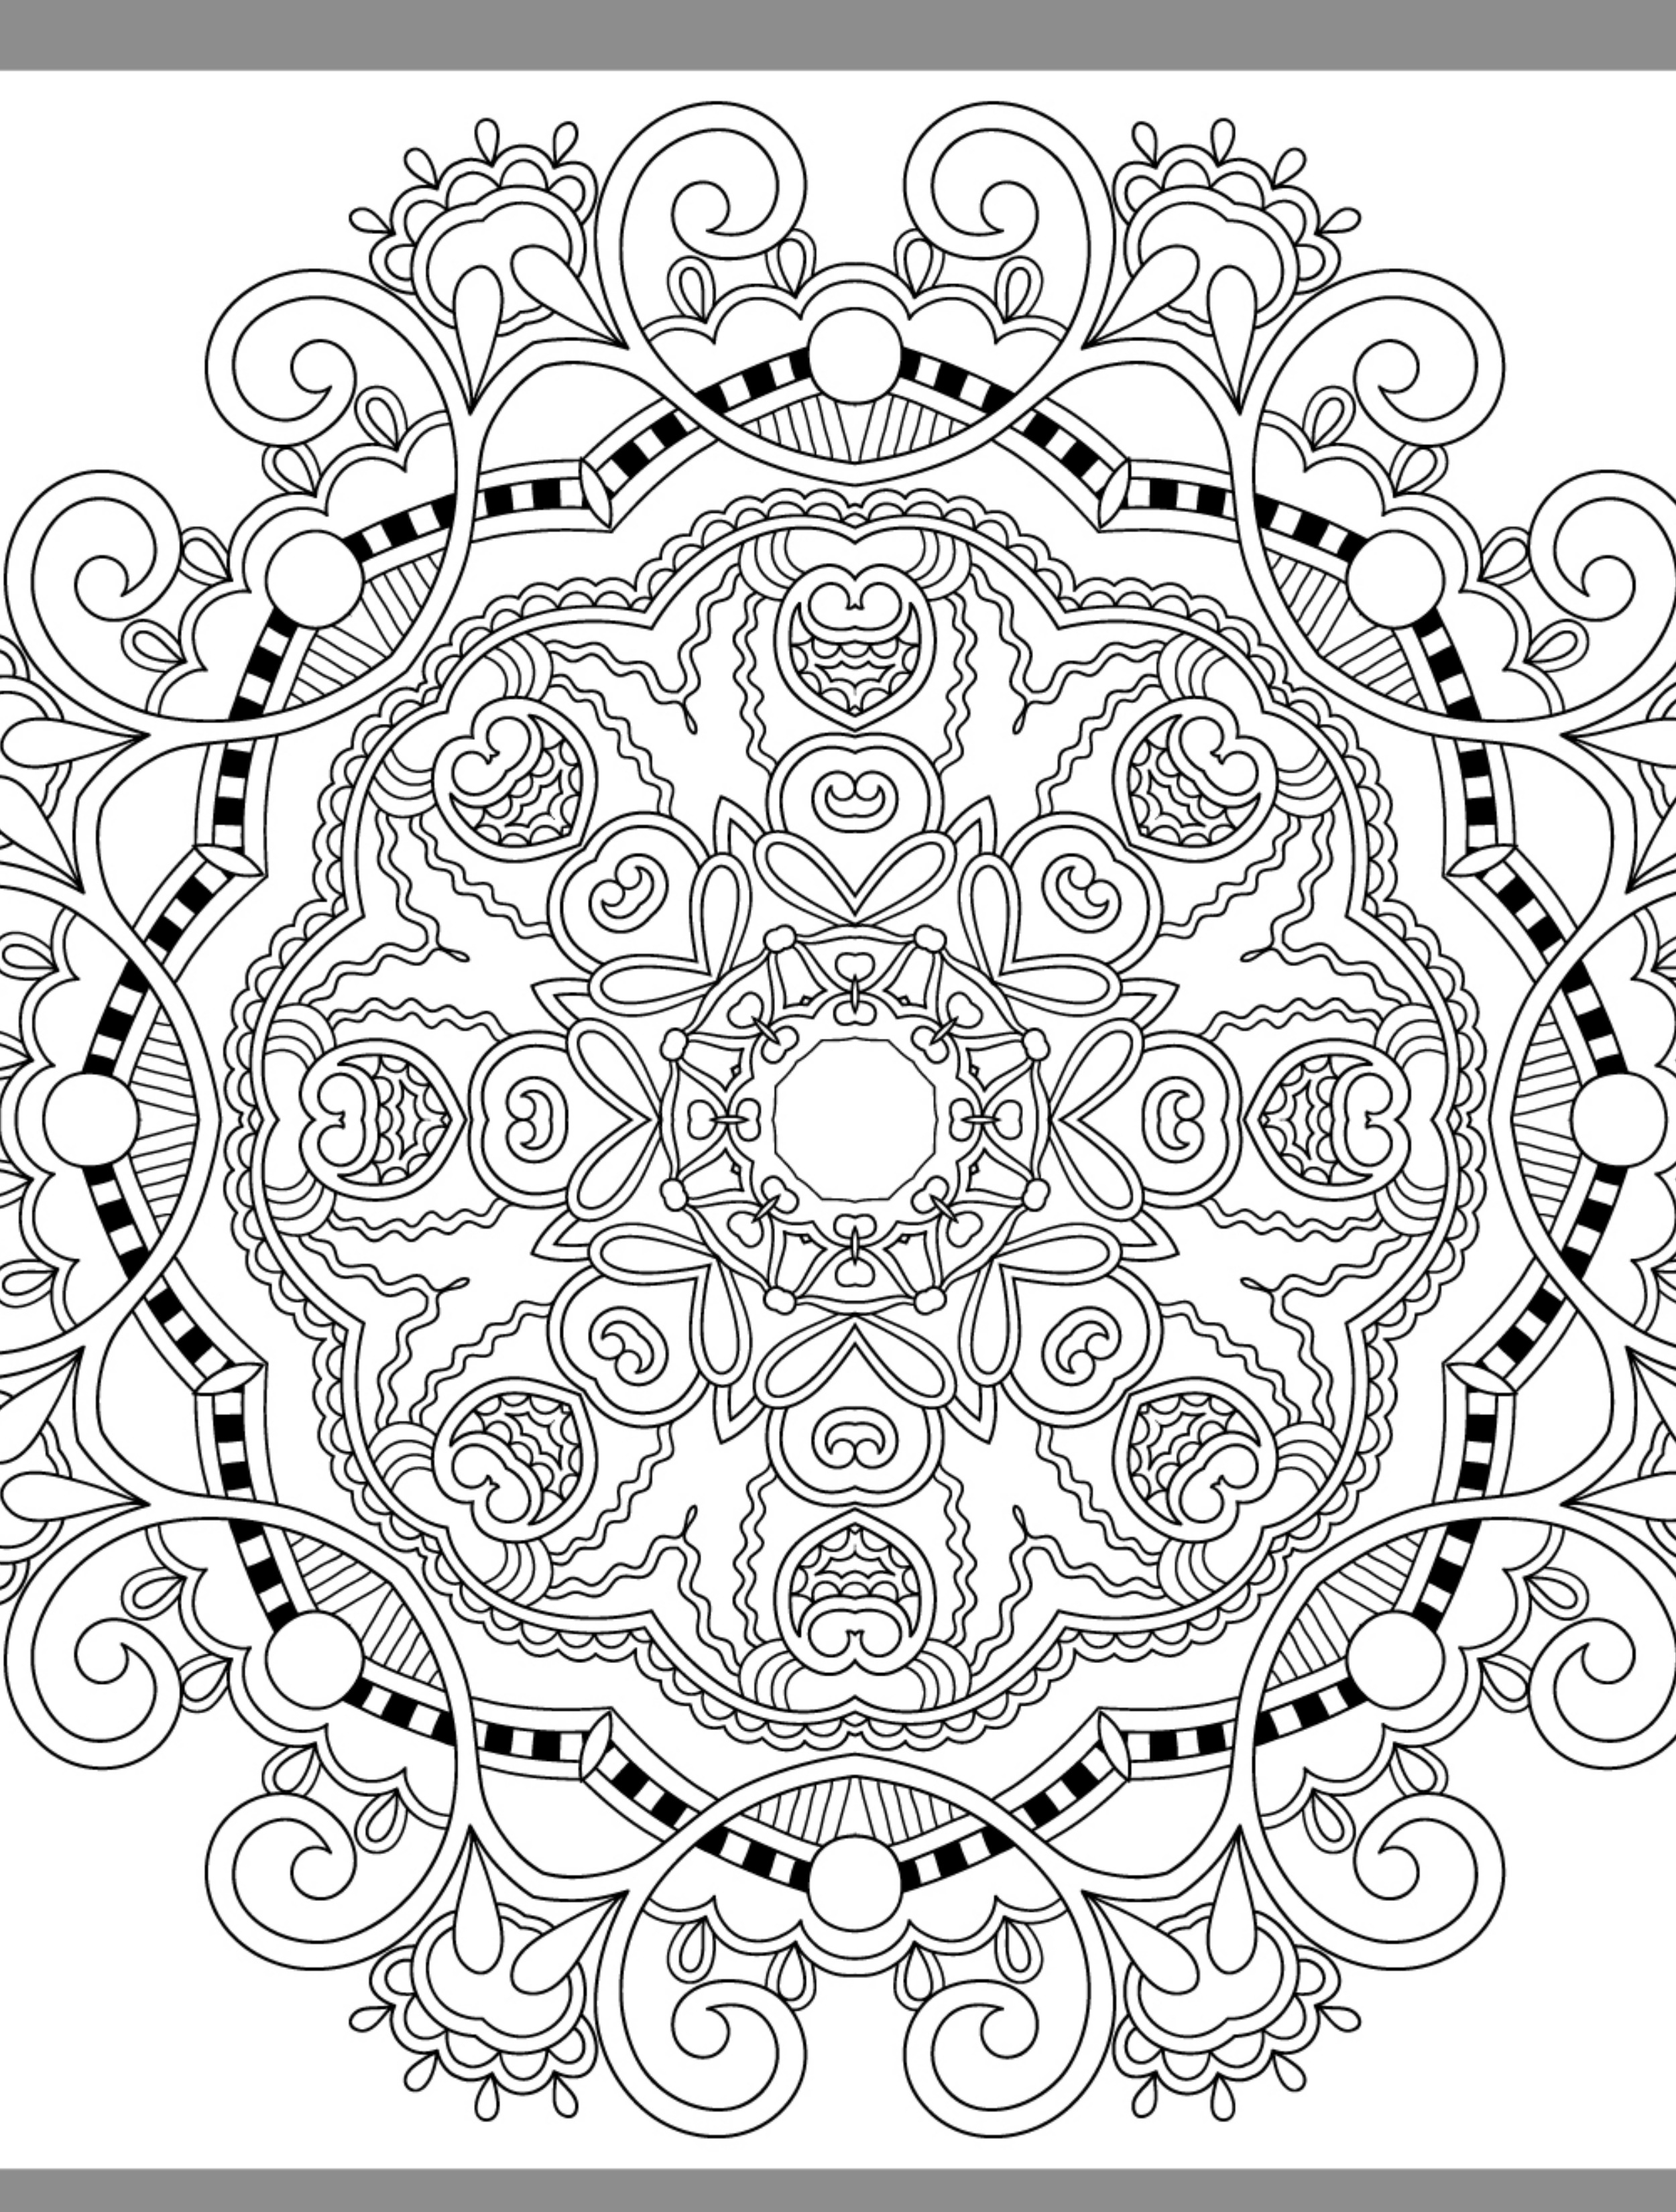 free downloadable adult coloring pages - 23